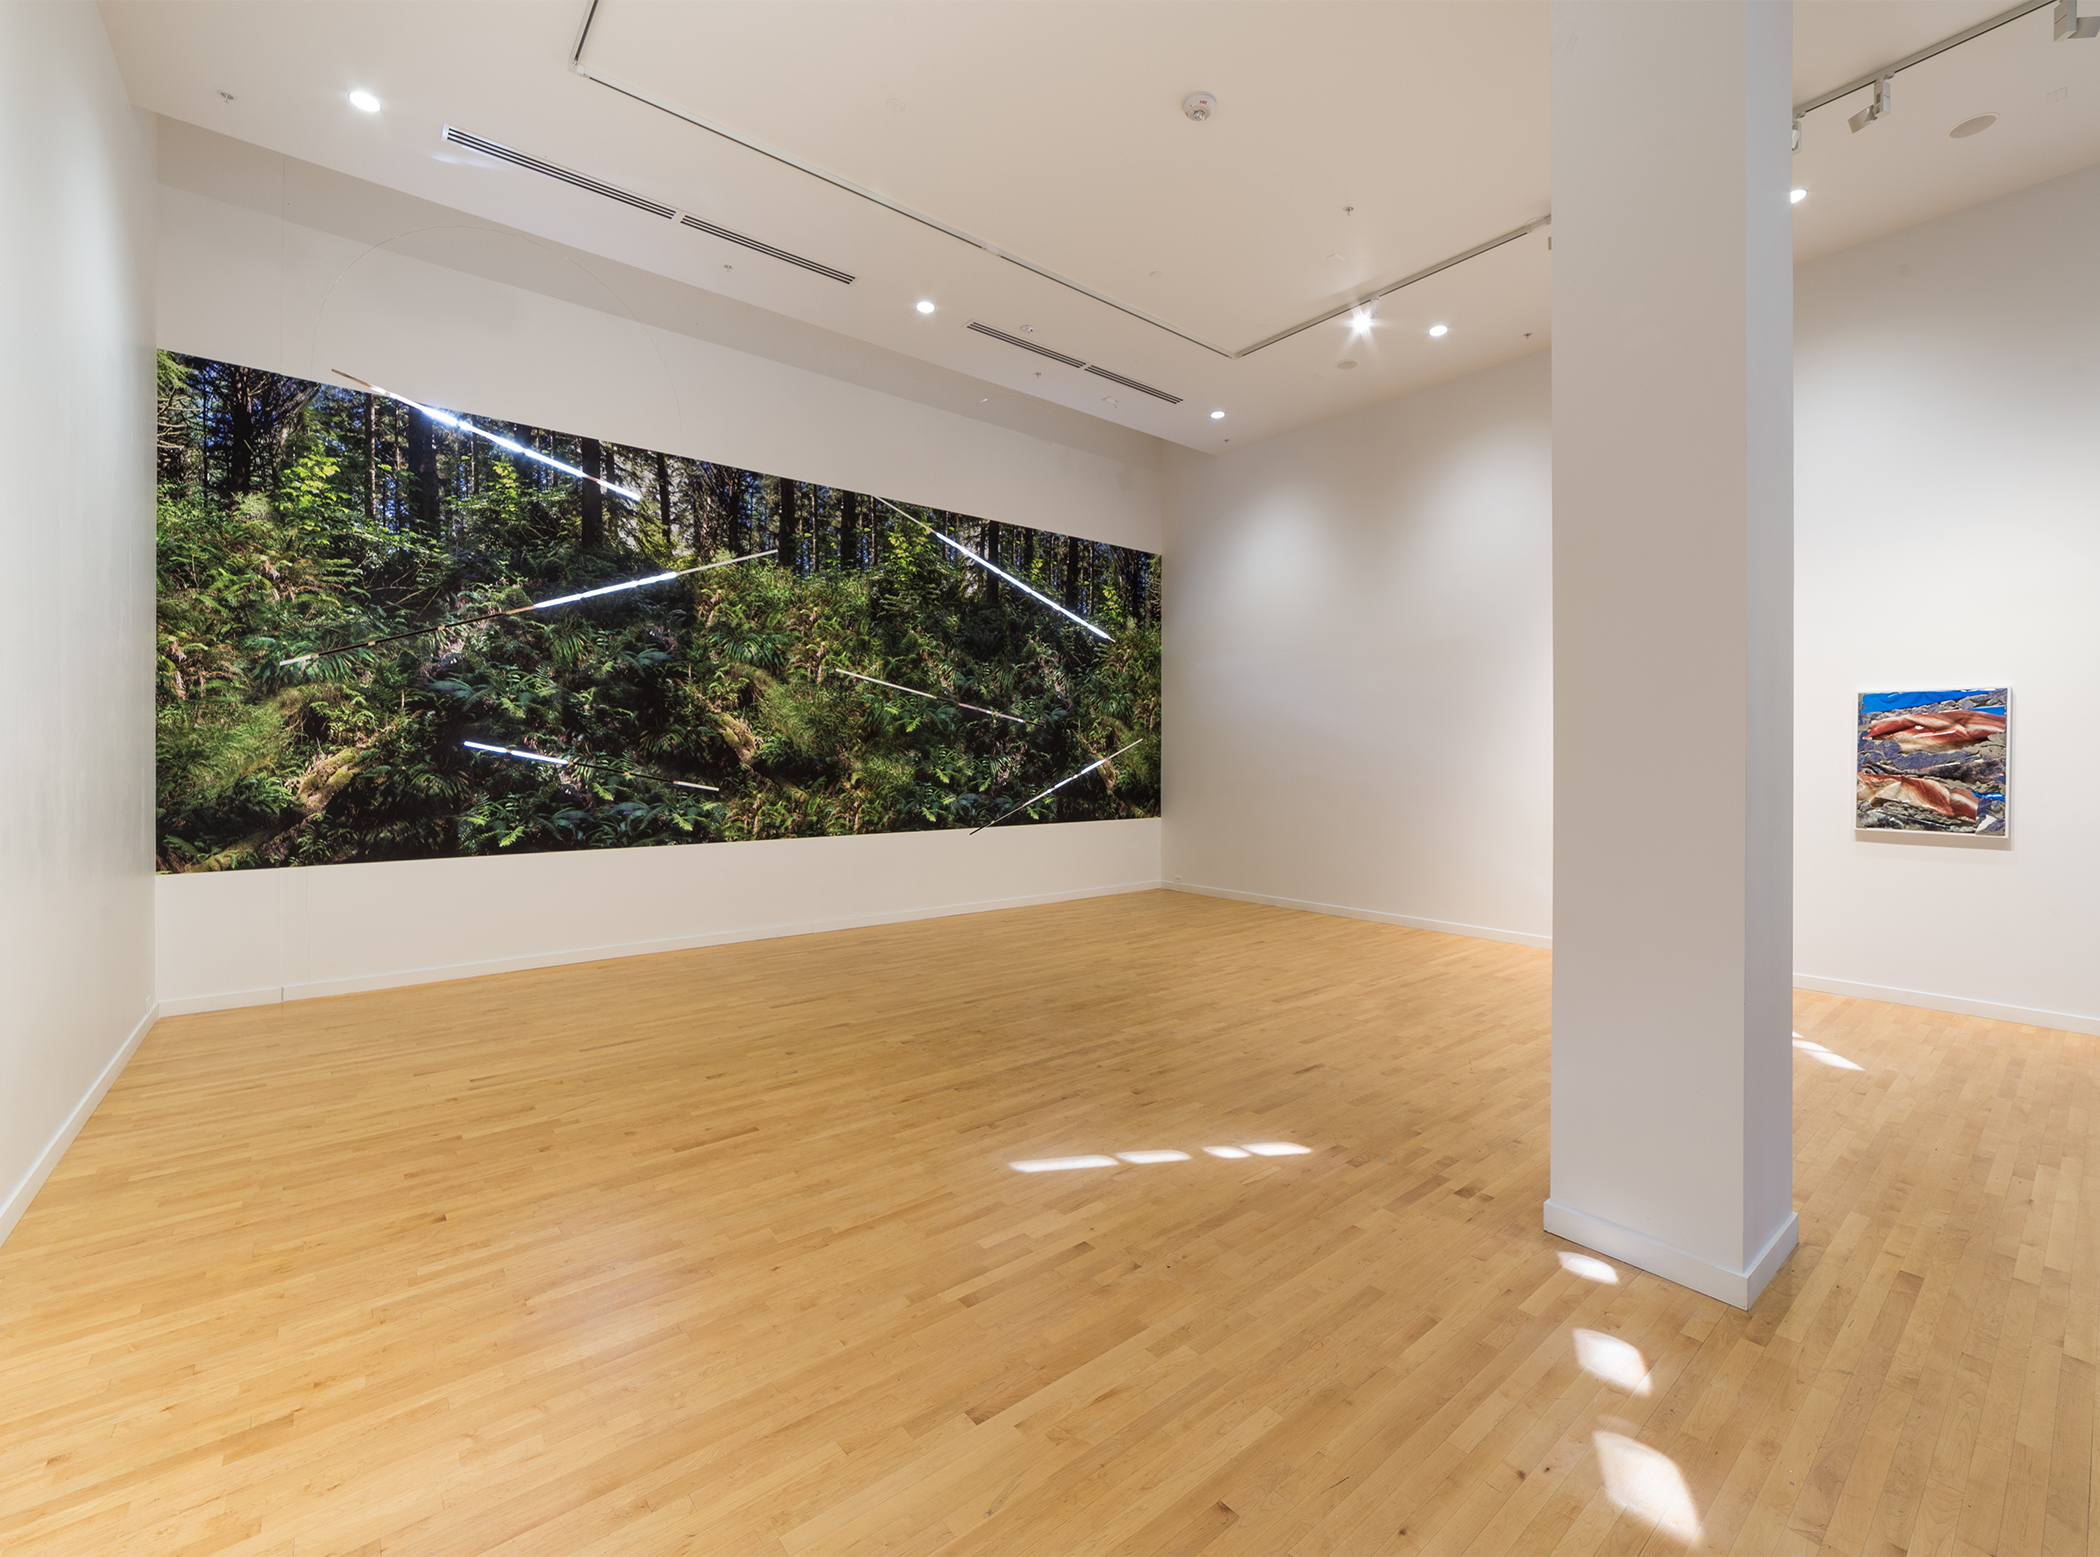 Cape Disappointment Shadows and Sunlight, 2017 10 x 32 feet site-specific installation: archival inkjet prints, cuts in wall. Installation at Center for Contemporary Art and Culture at the Portland Northwest College of the Arts, Portland, Oregon.